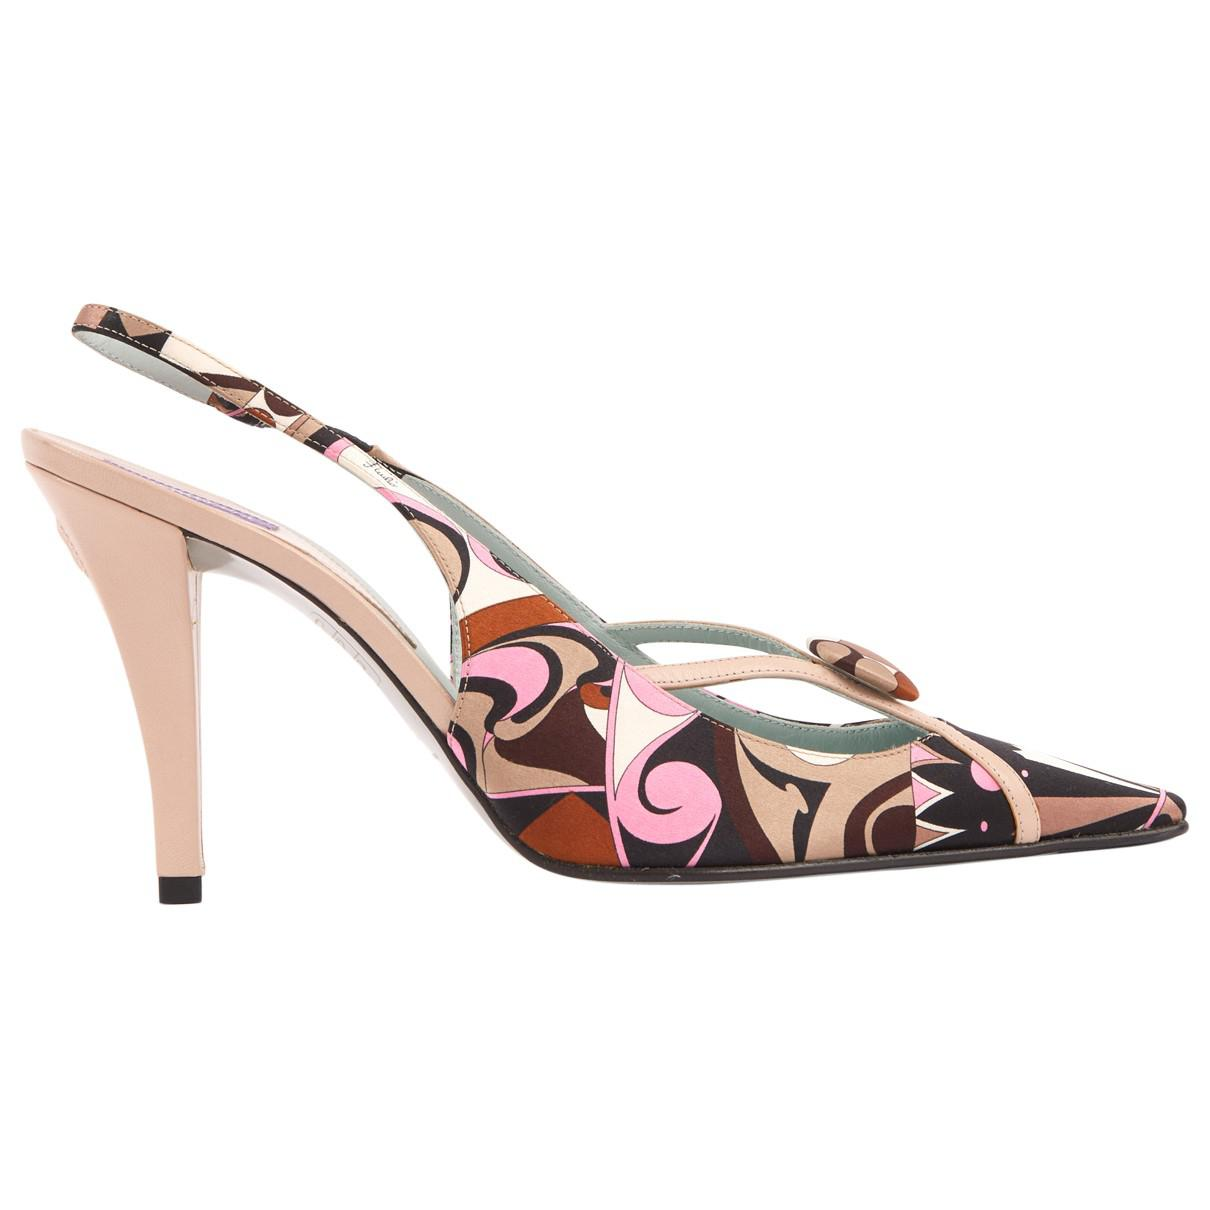 Pre-owned - Black Heels Emilio Pucci XAaxV